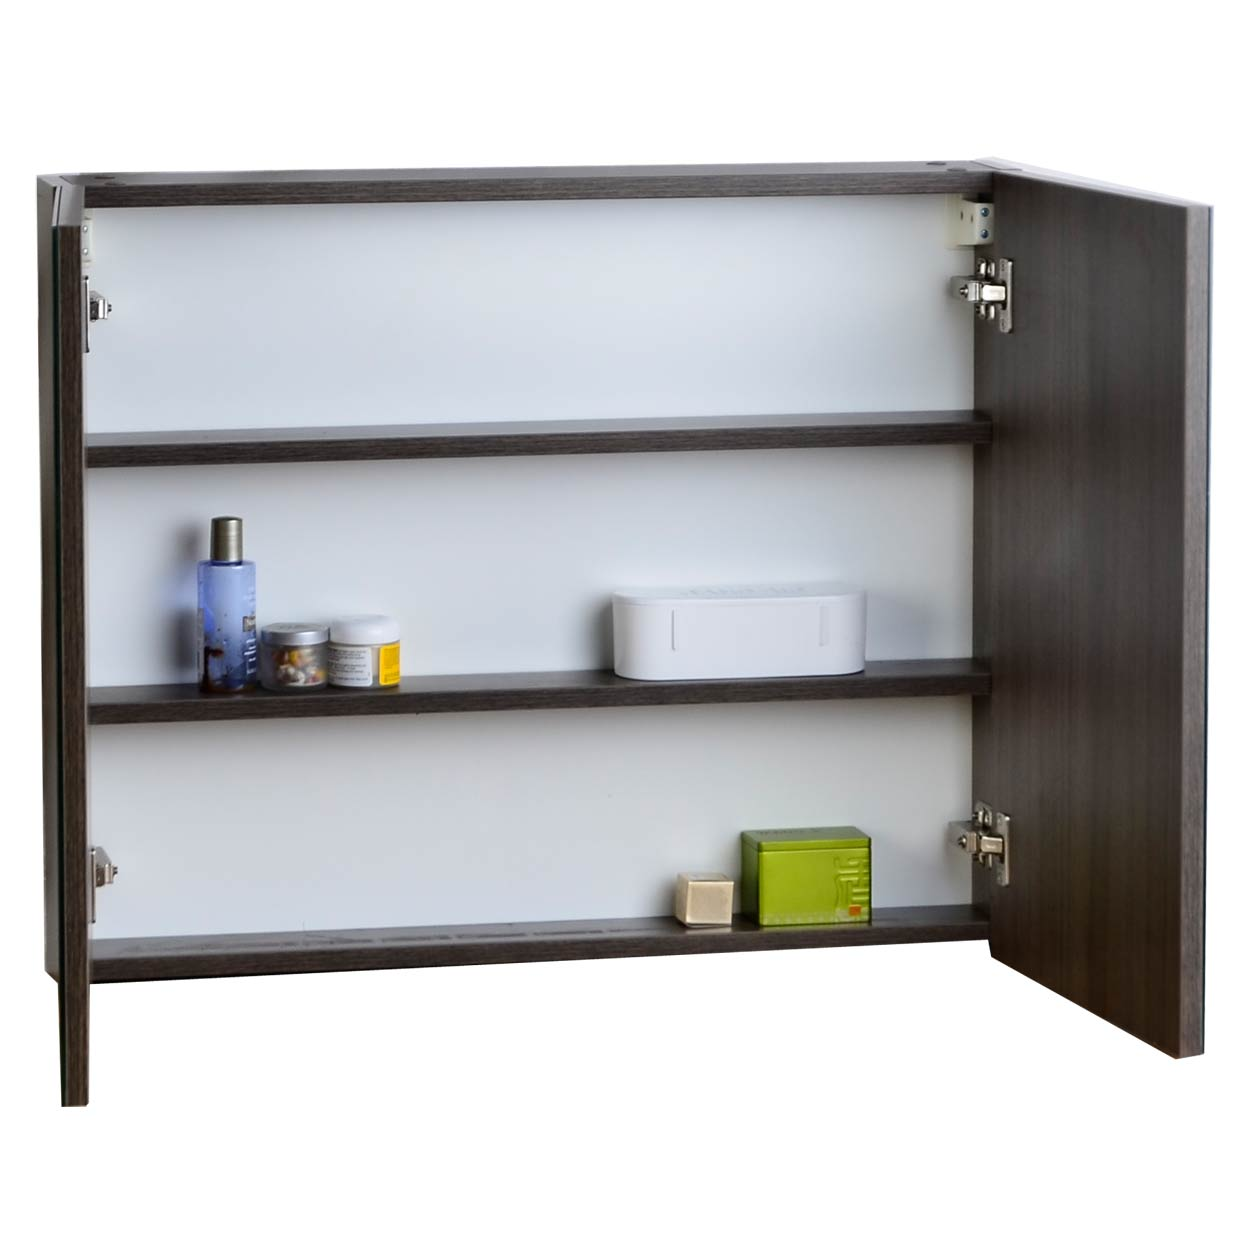 Buy Medicine Cabinet w Mirror Grey Oak 31.5 in. W x 26 in. H TN ...